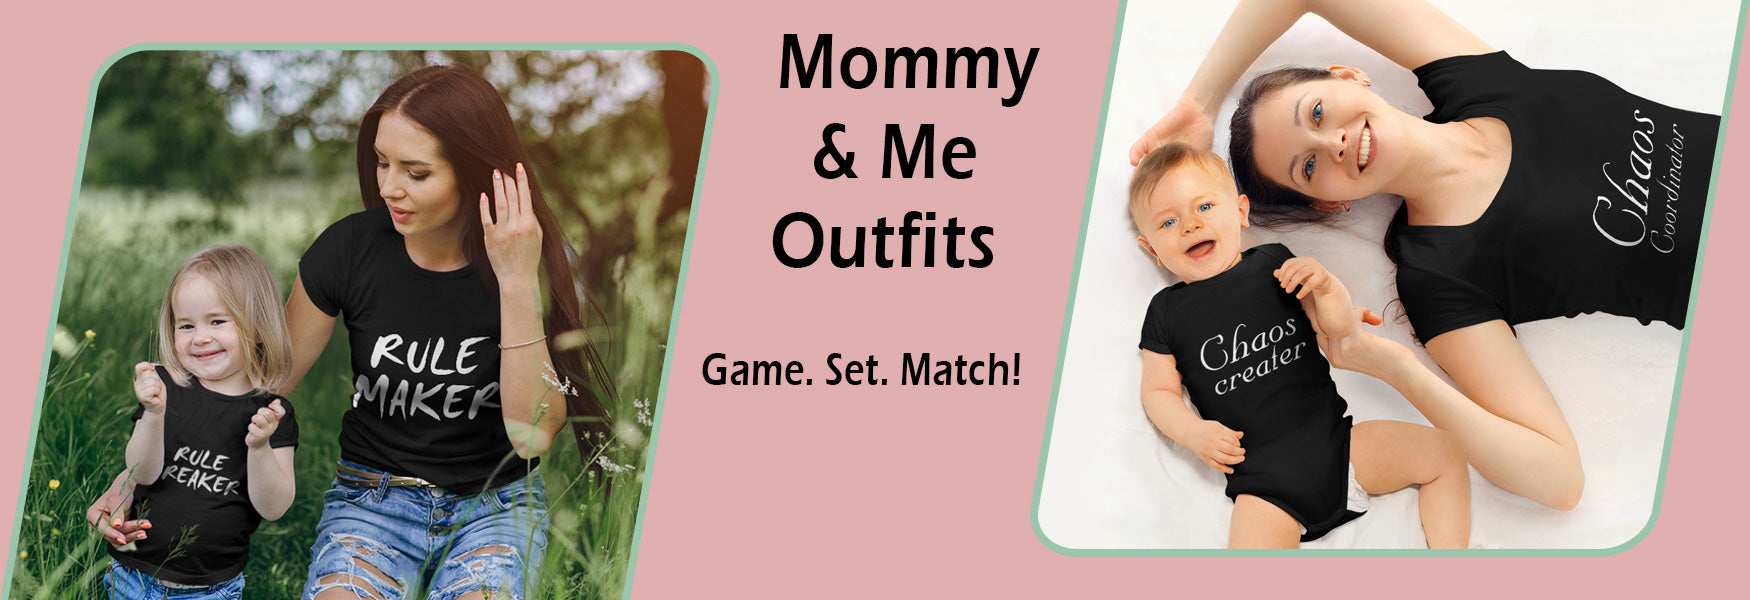 Cute Rascals Shop Mommy & me matching outfits